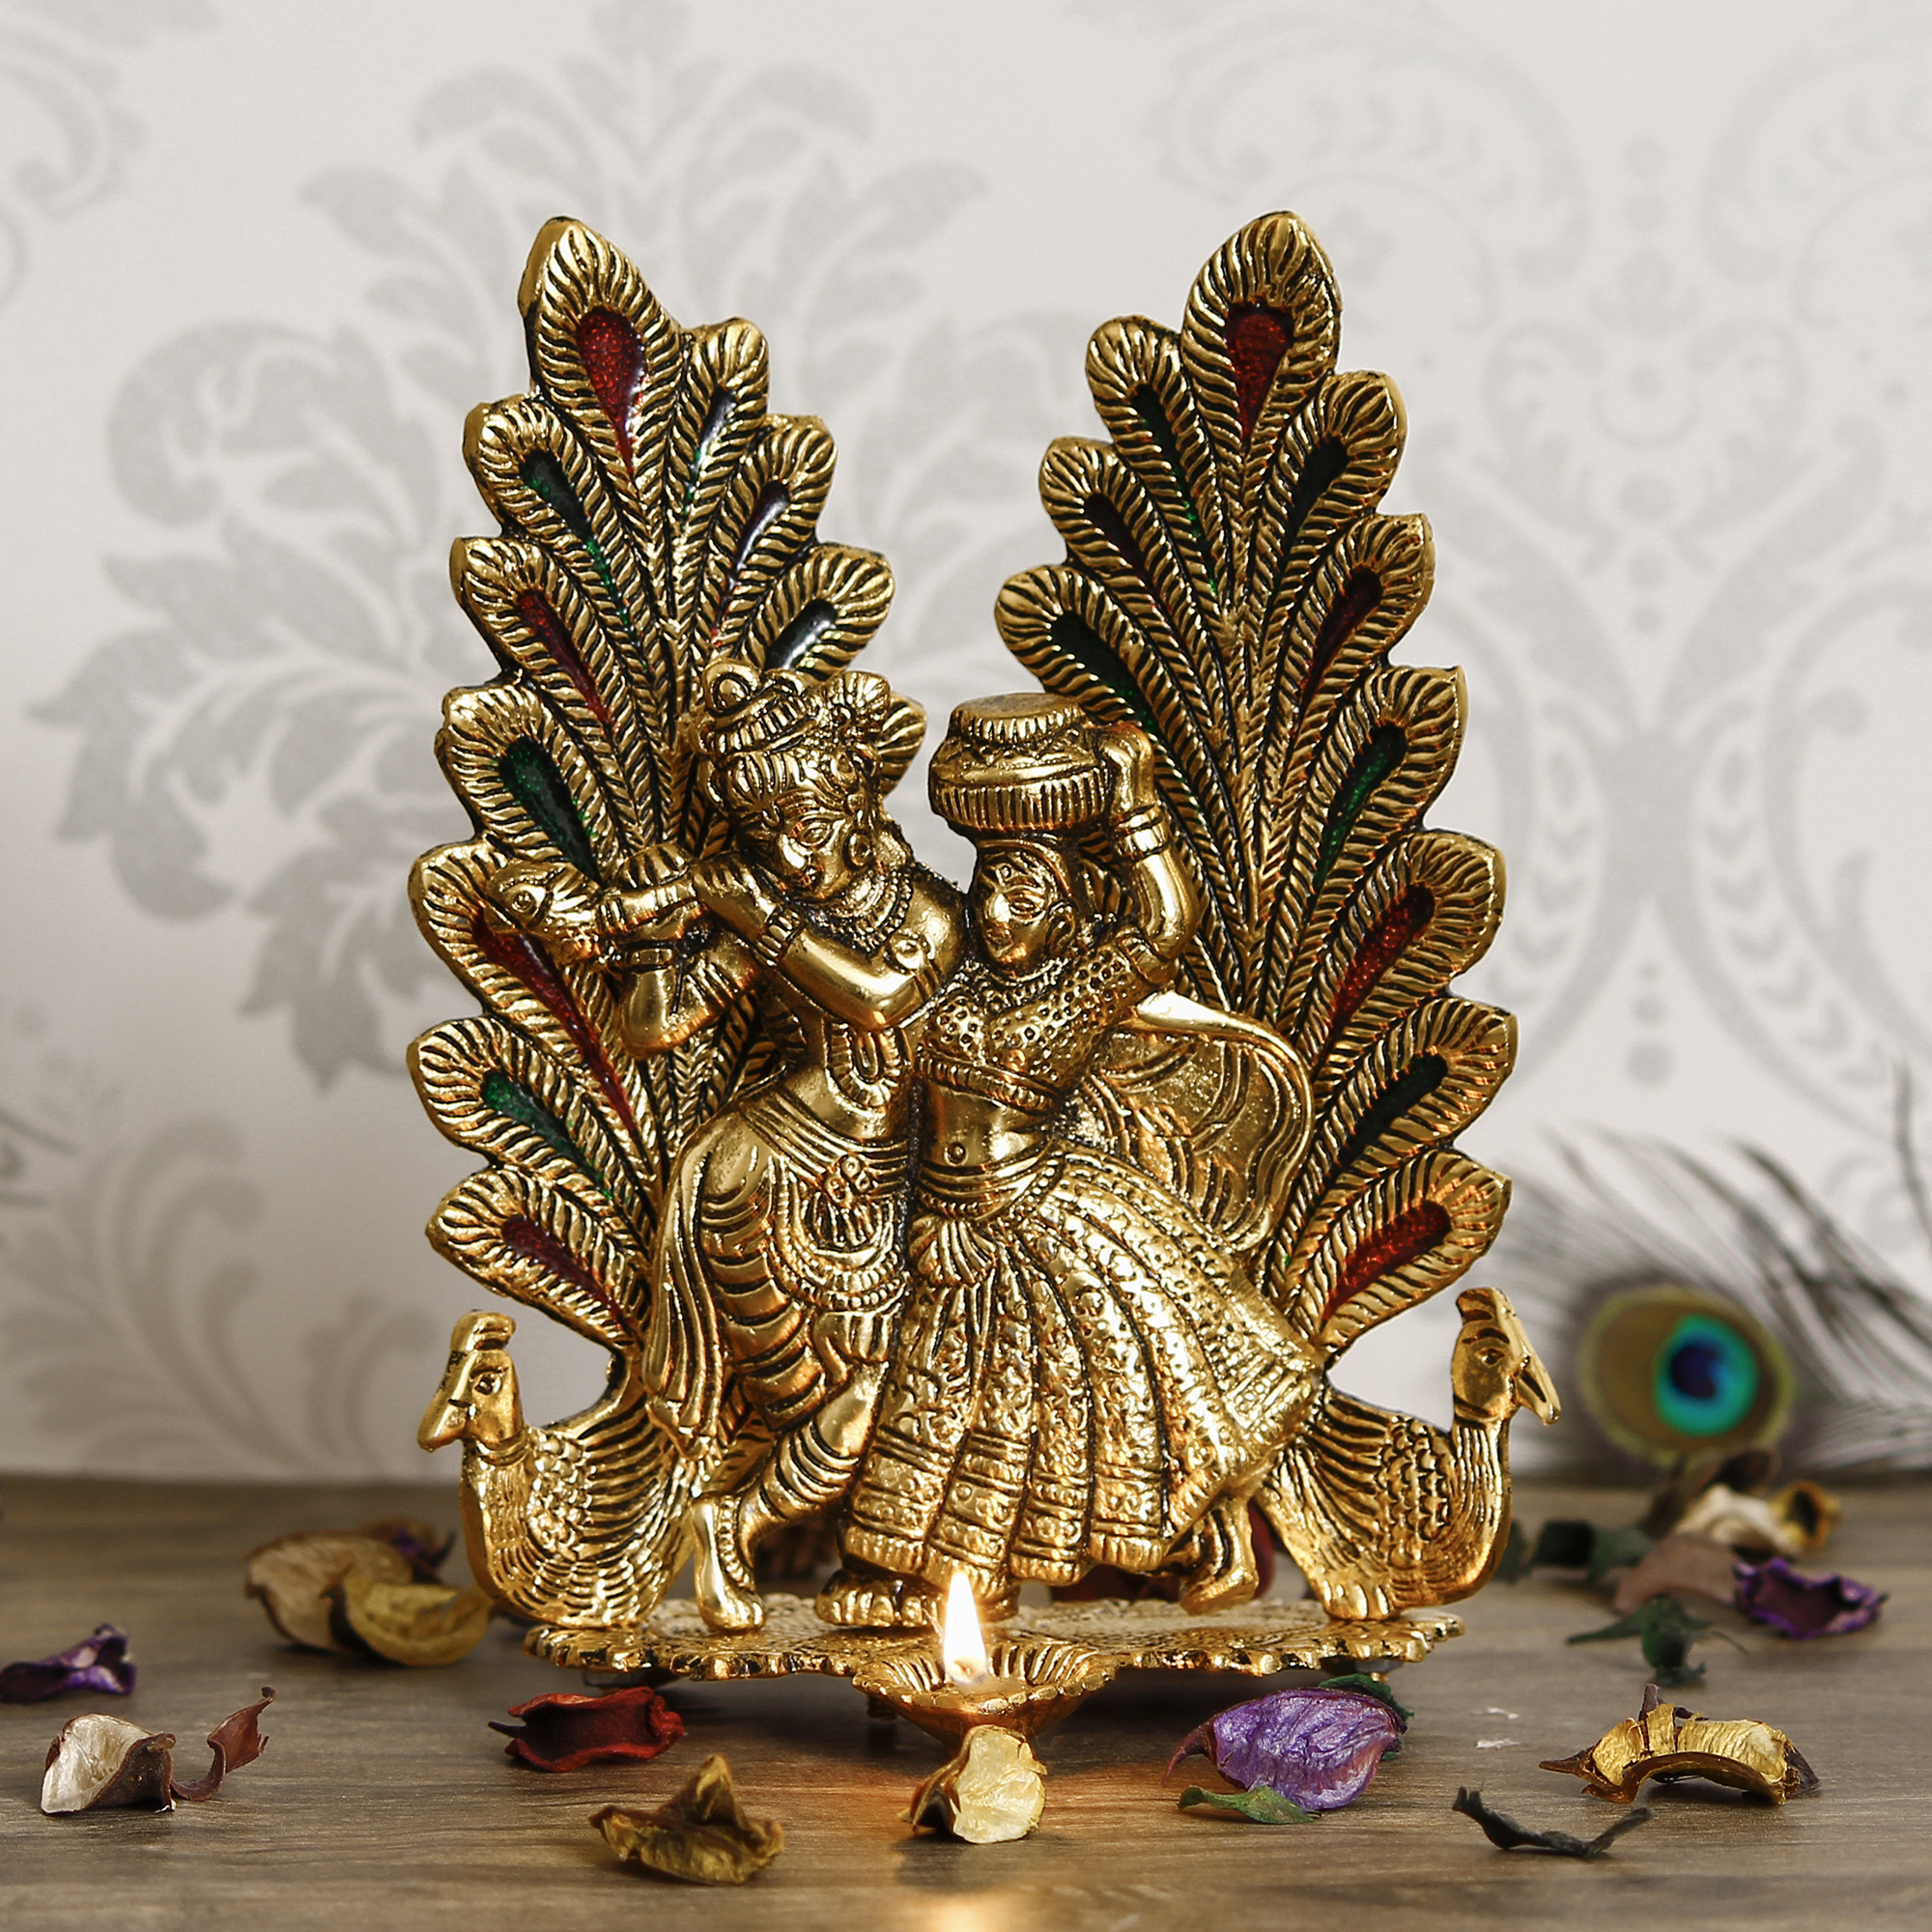 Golden Radha Krishna Idol Metal Decorative Showpiece with Diya Indian Home Decor